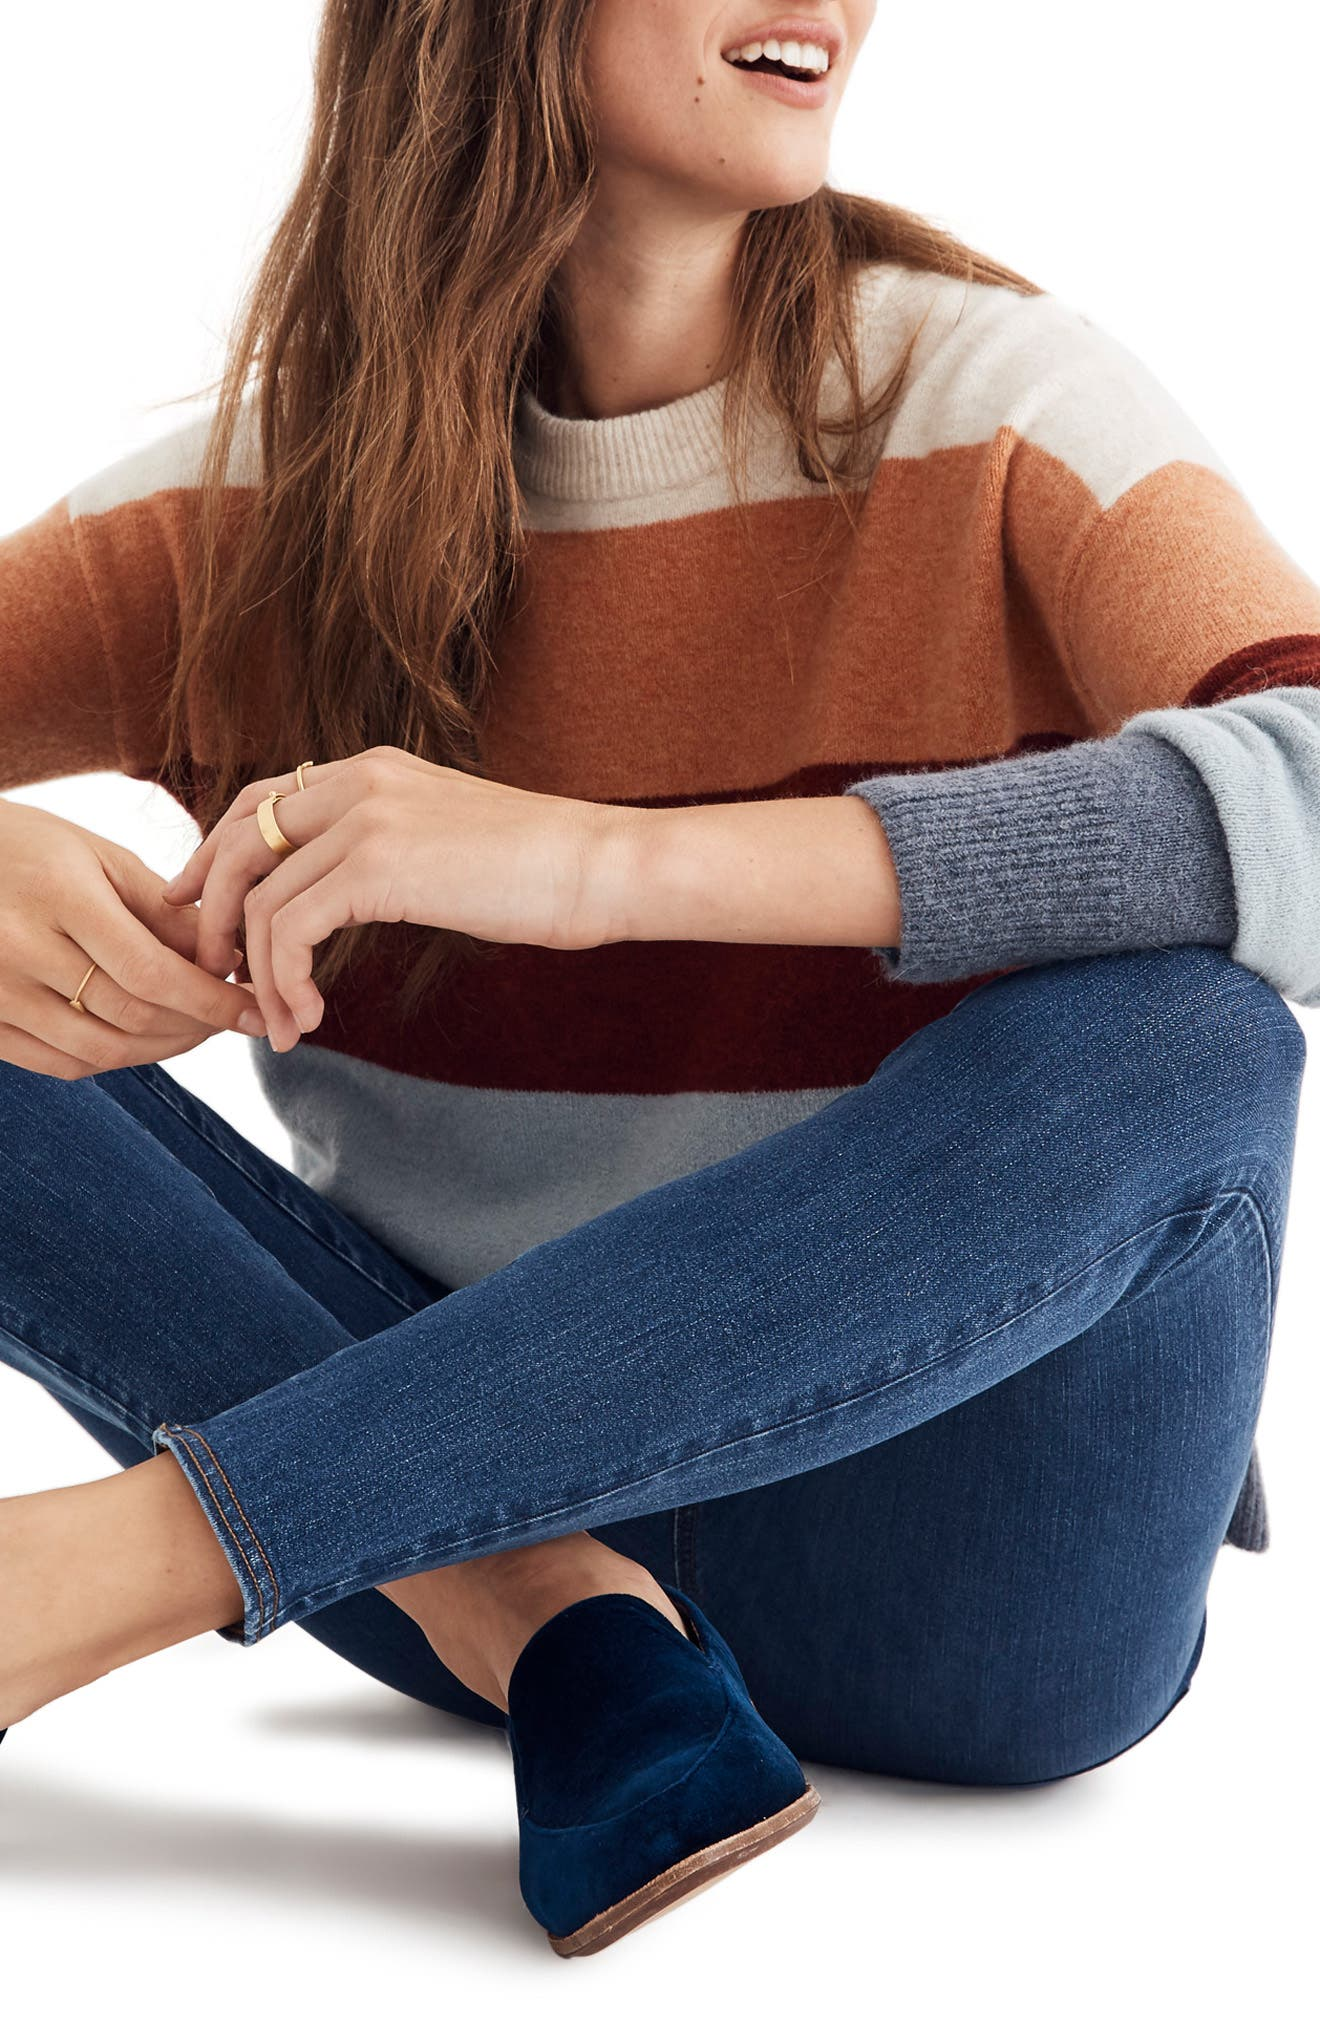 MADEWELL, Pull-On Jeans, Main thumbnail 1, color, FREEBURG